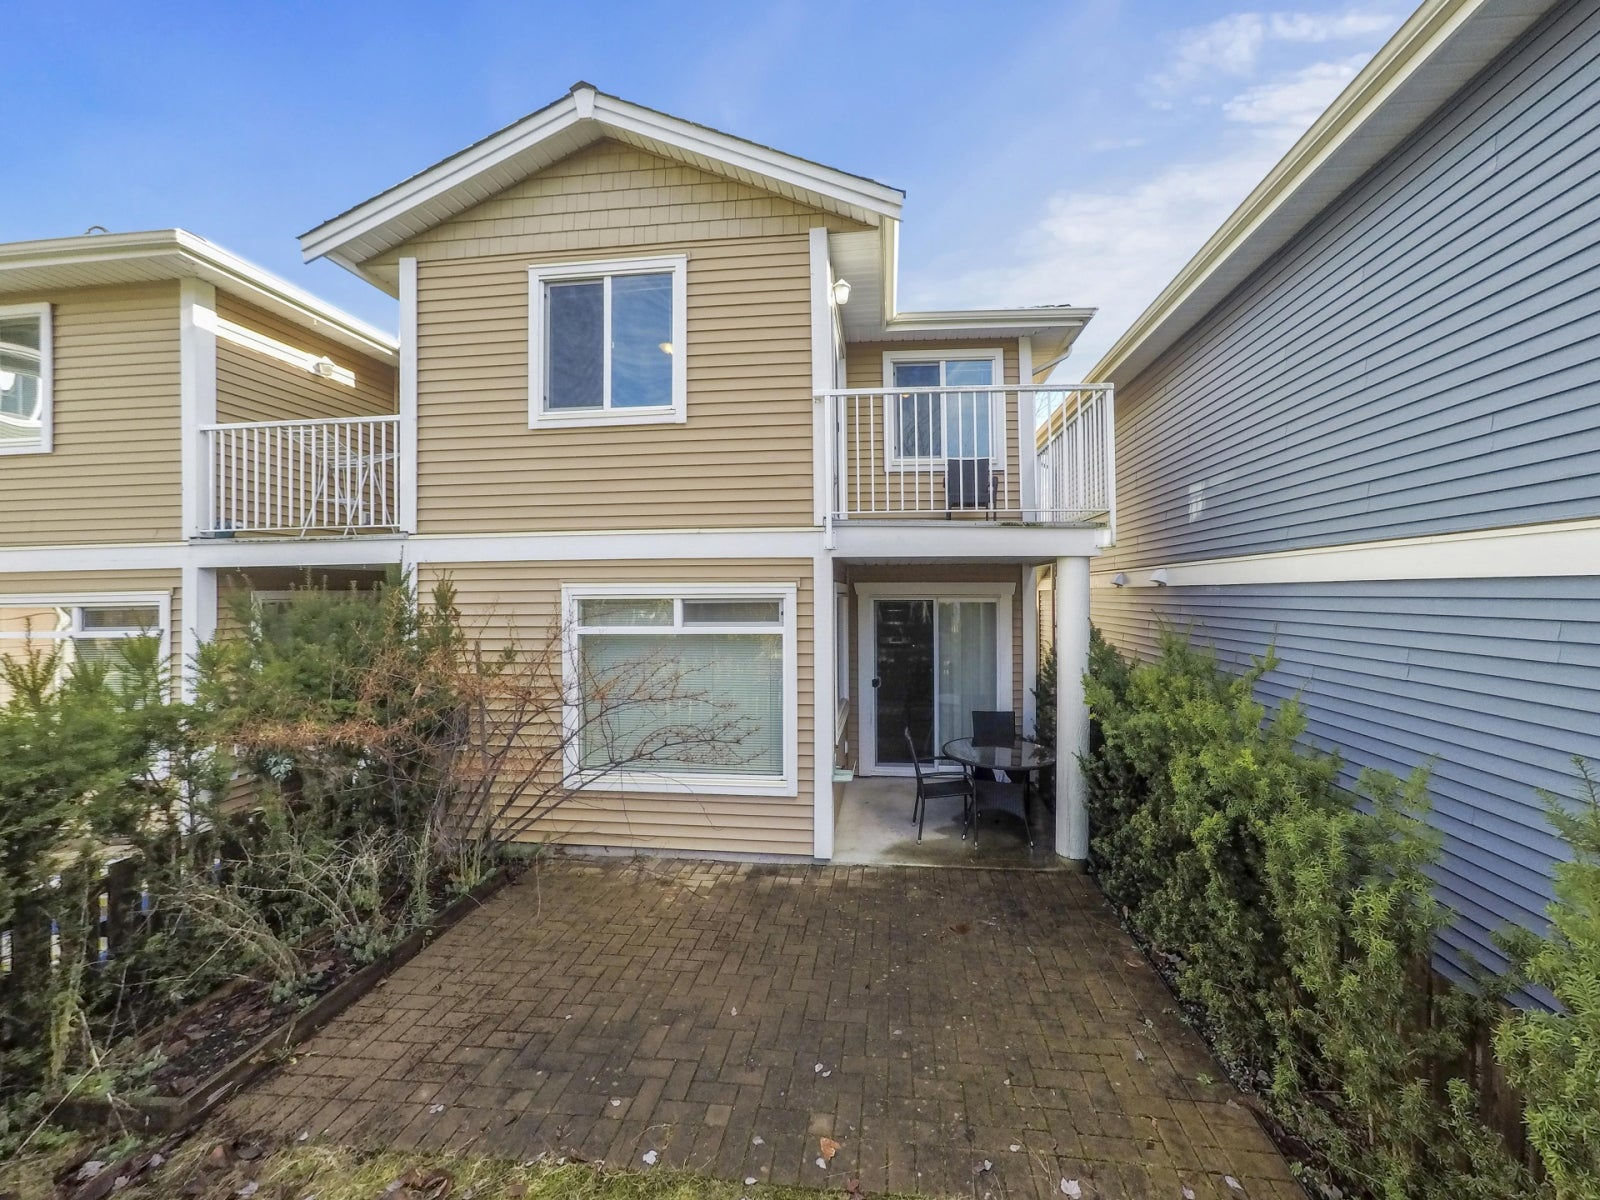 11 624 SHAW ROAD - Gibsons & Area Townhouse for sale, 3 Bedrooms (R2234910) #3